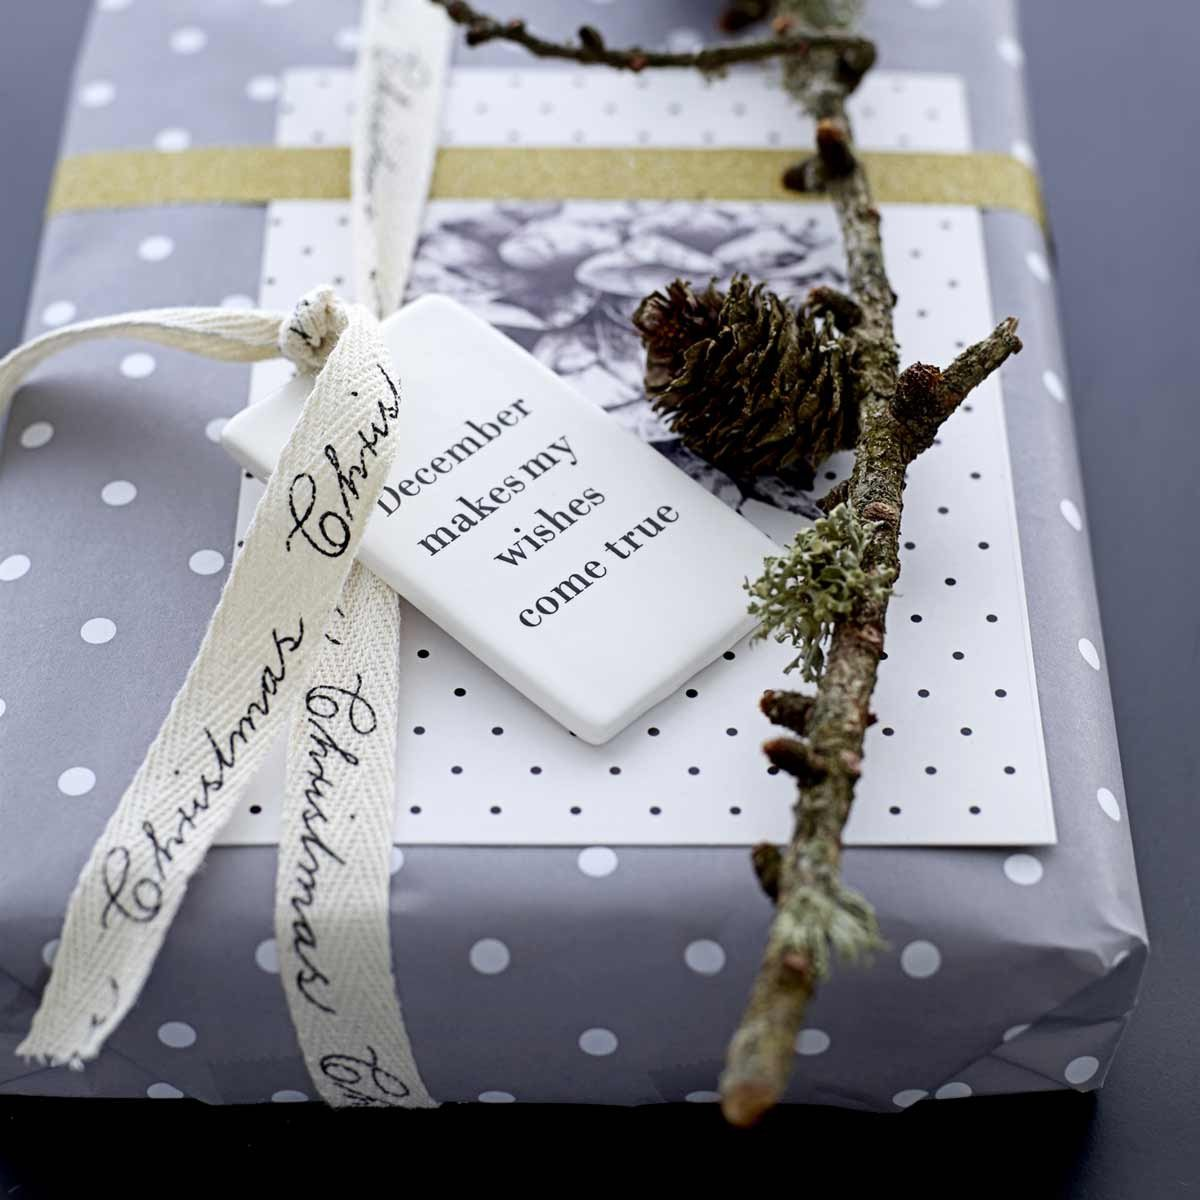 Carta da regalo Bloomingville righe e pois